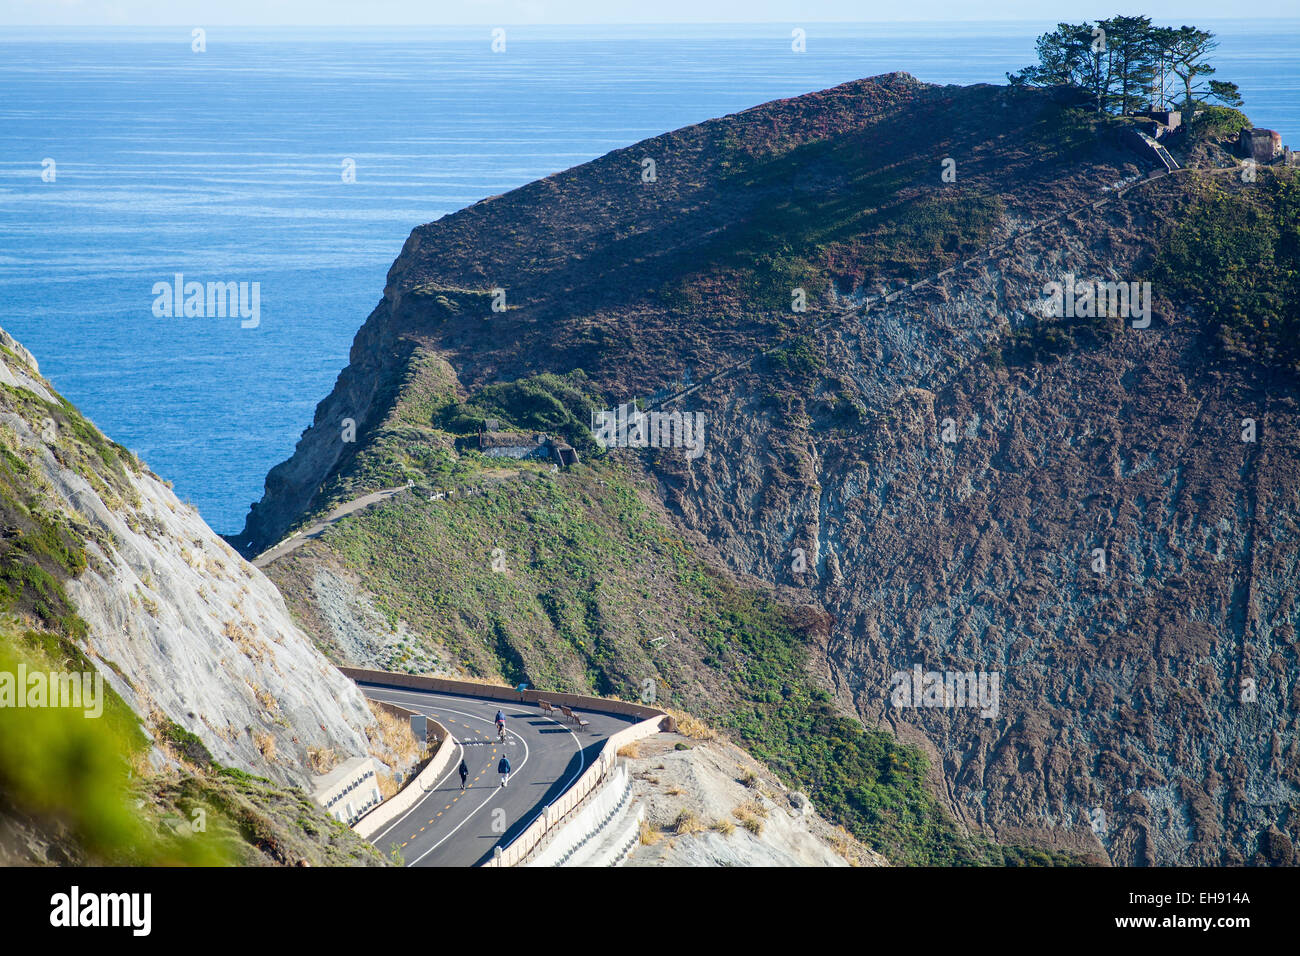 bicyclists on Devil's Slide Coastal Trail, near Half Moon Bay, California - Stock Image